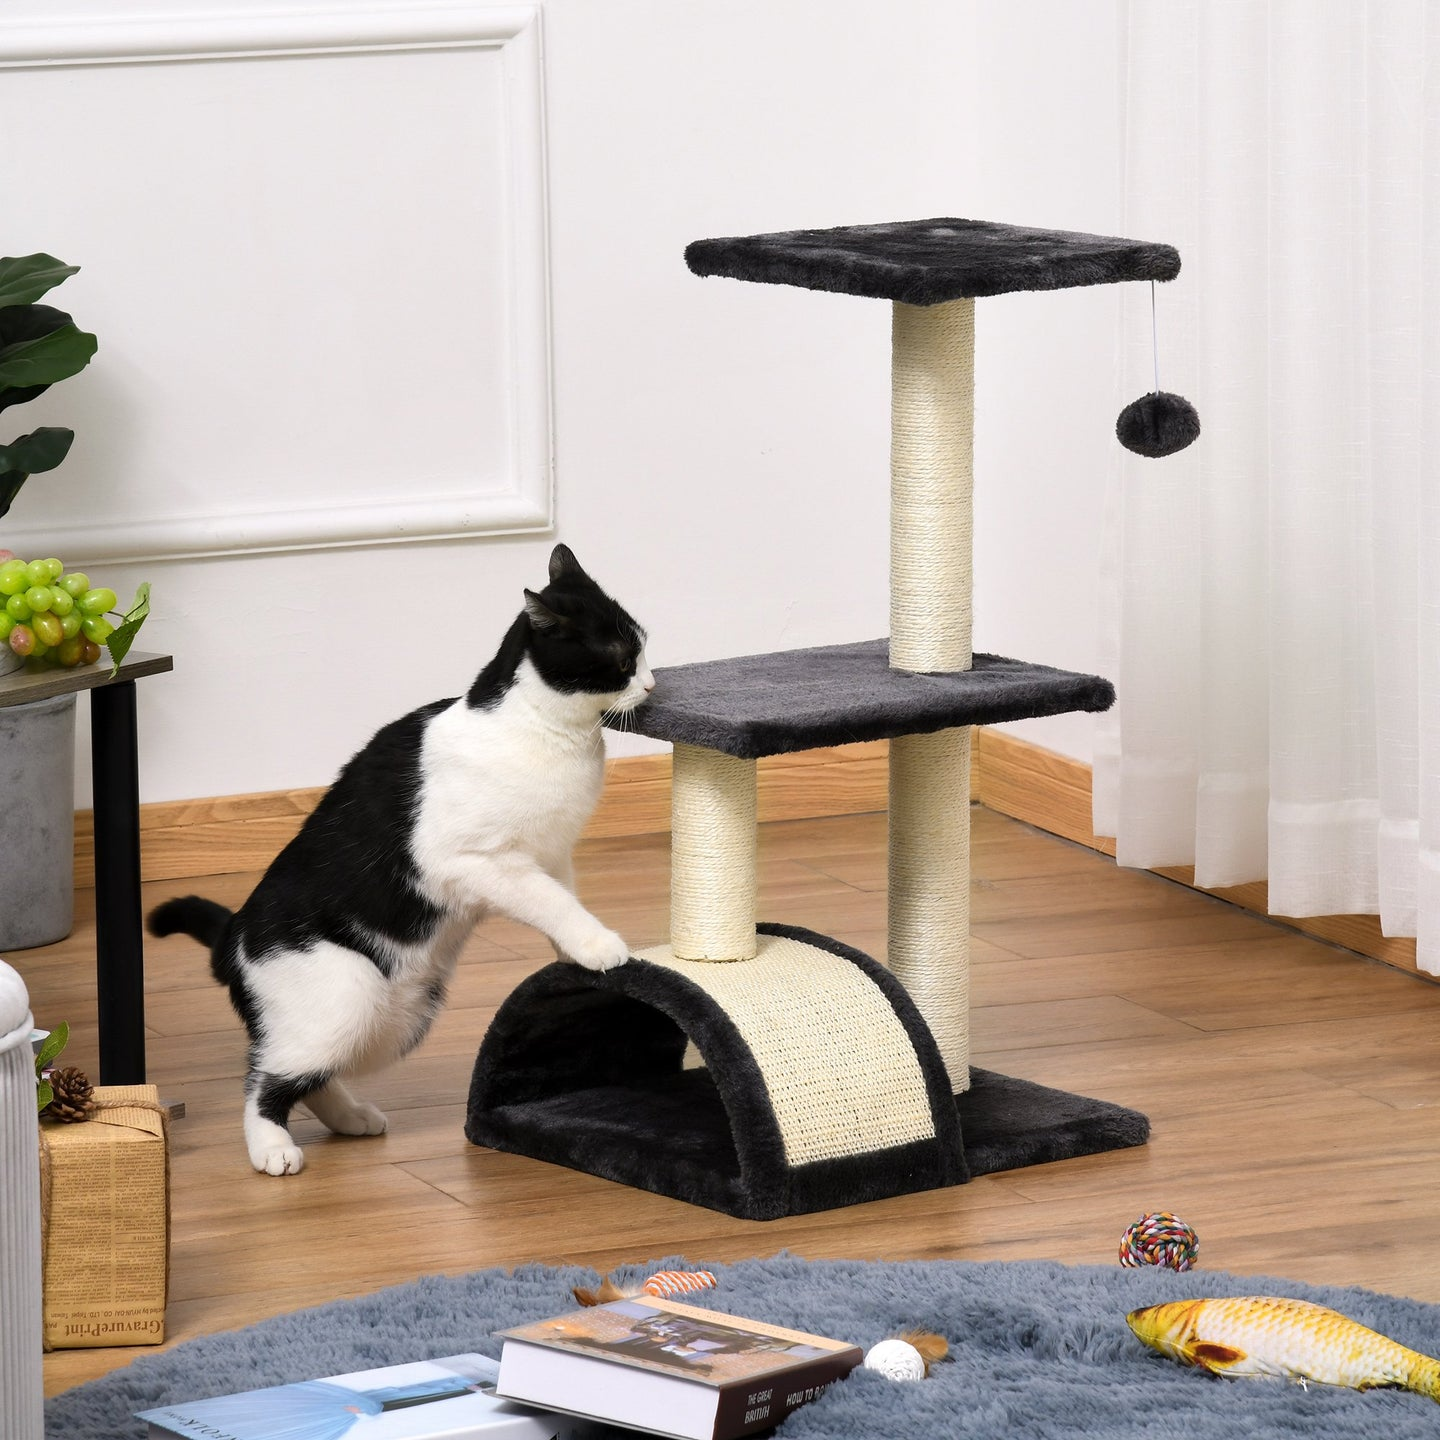 PawHut Cat tree Tower 72cm Climbing Activity Centre Kitten with Sisal Scratching Post Pad Arc Perch Hanging Ball Toy Grey